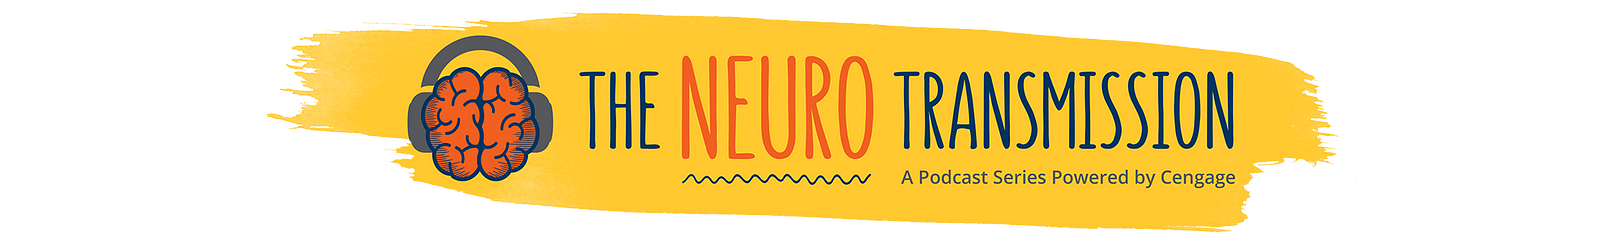 The Neuro Transmission. A podcast series powered by Cengage